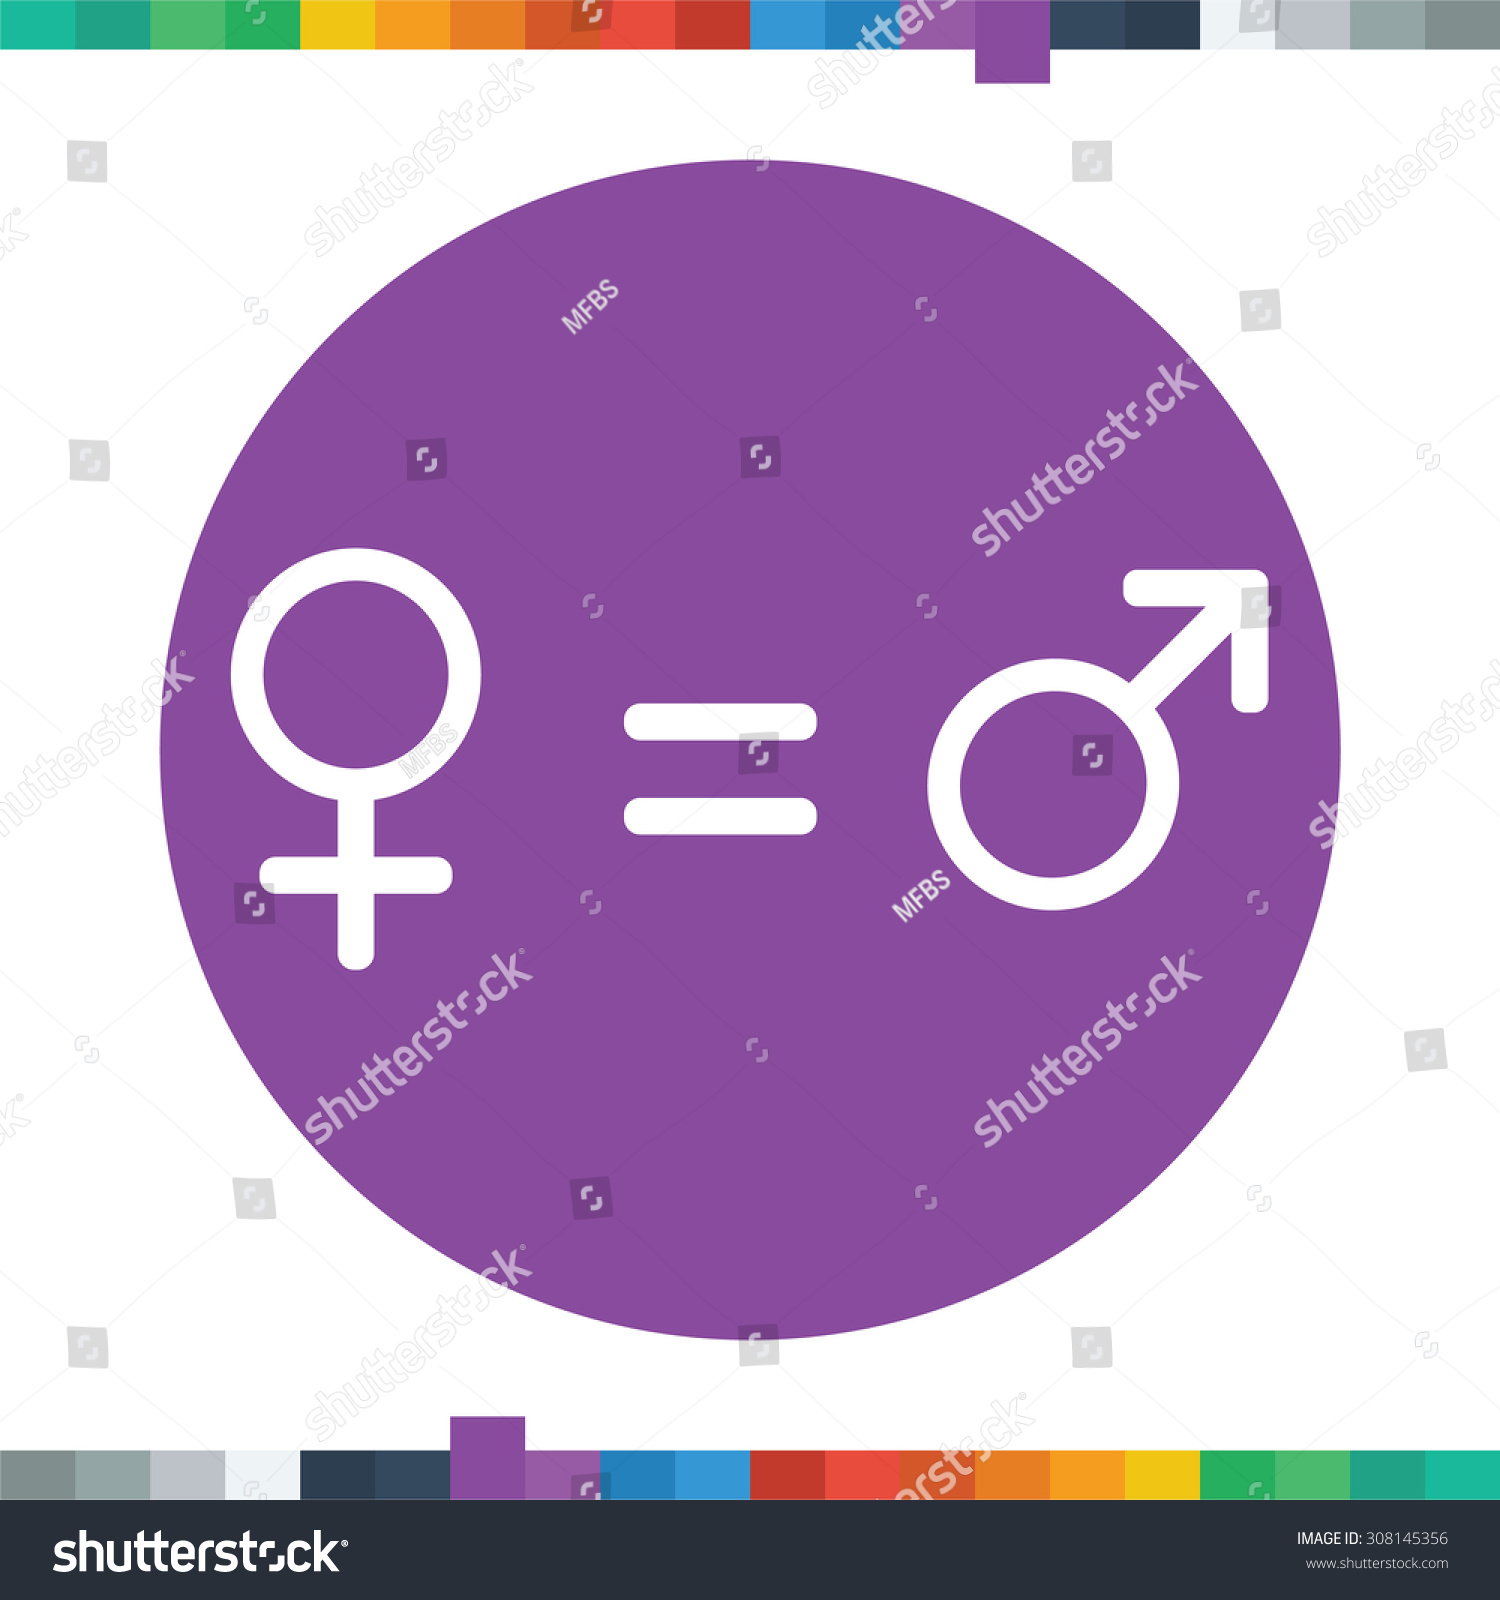 equality between genders The role of the bureau for gender equality, part of the geneva-based secretariat of the ilo, is to advocate for gender equality throughout the organization the policy on gender equality and mainstreaming in the ilo, announced by the director-general in 1999, states that mutually-reinforcing action.